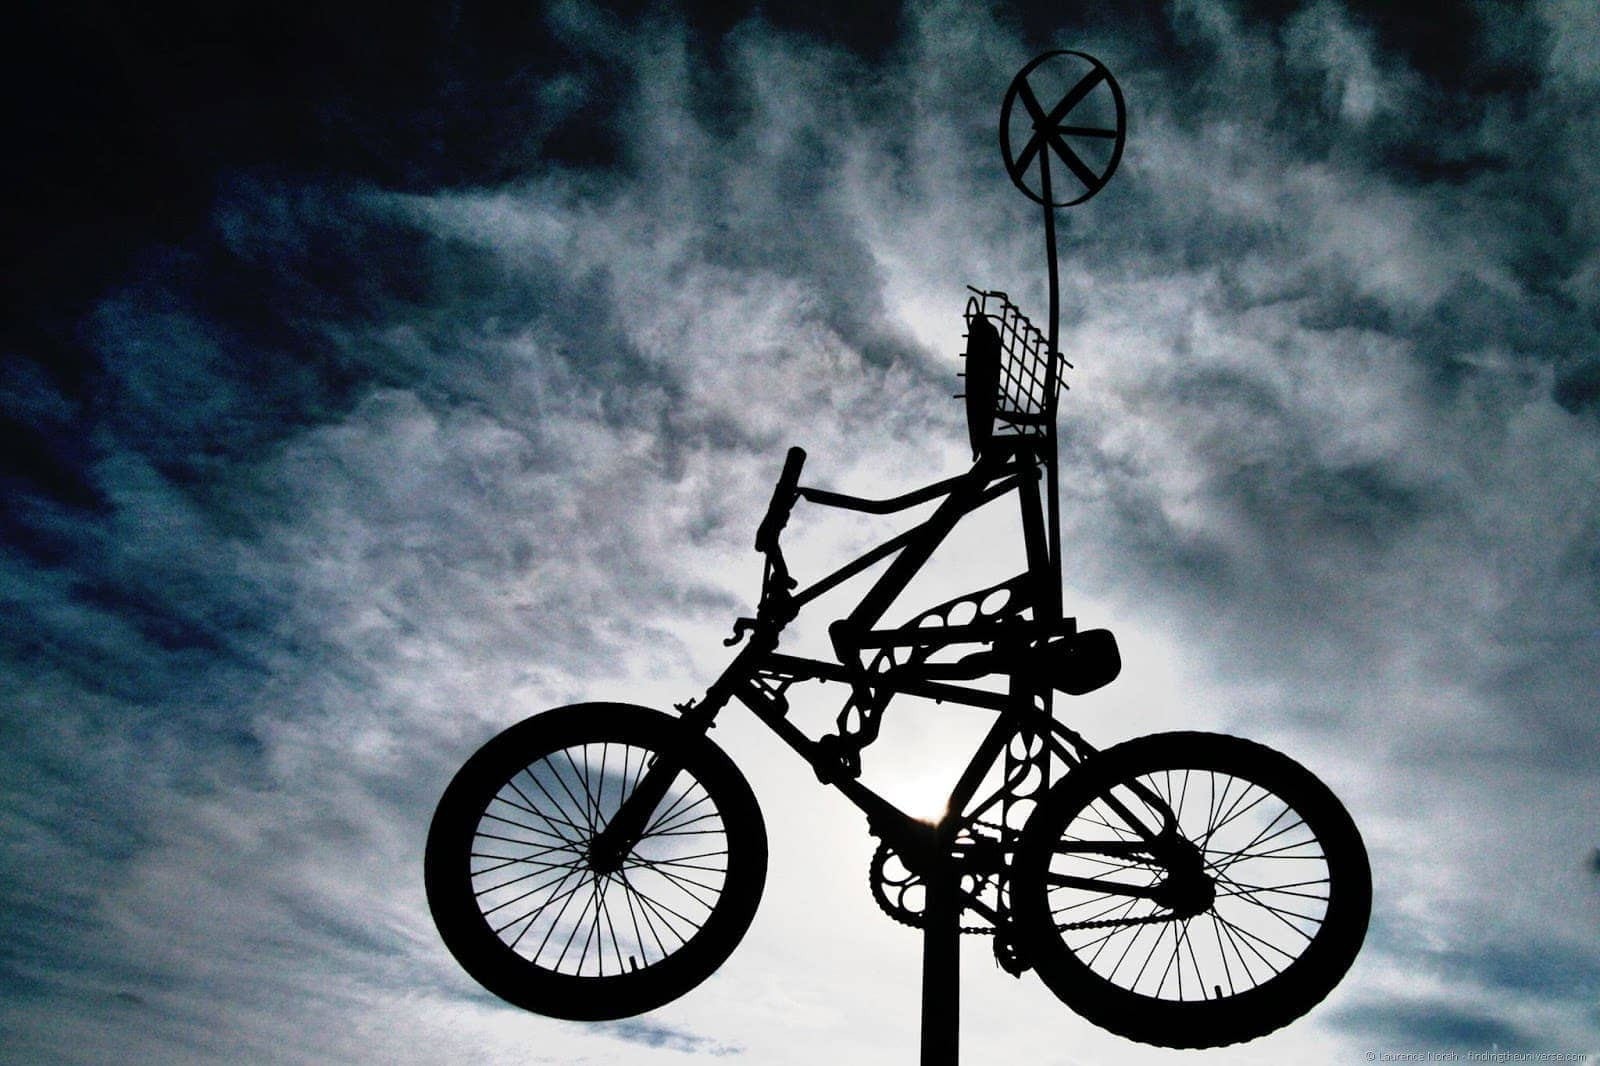 Flying bicycle against sky silhoutte